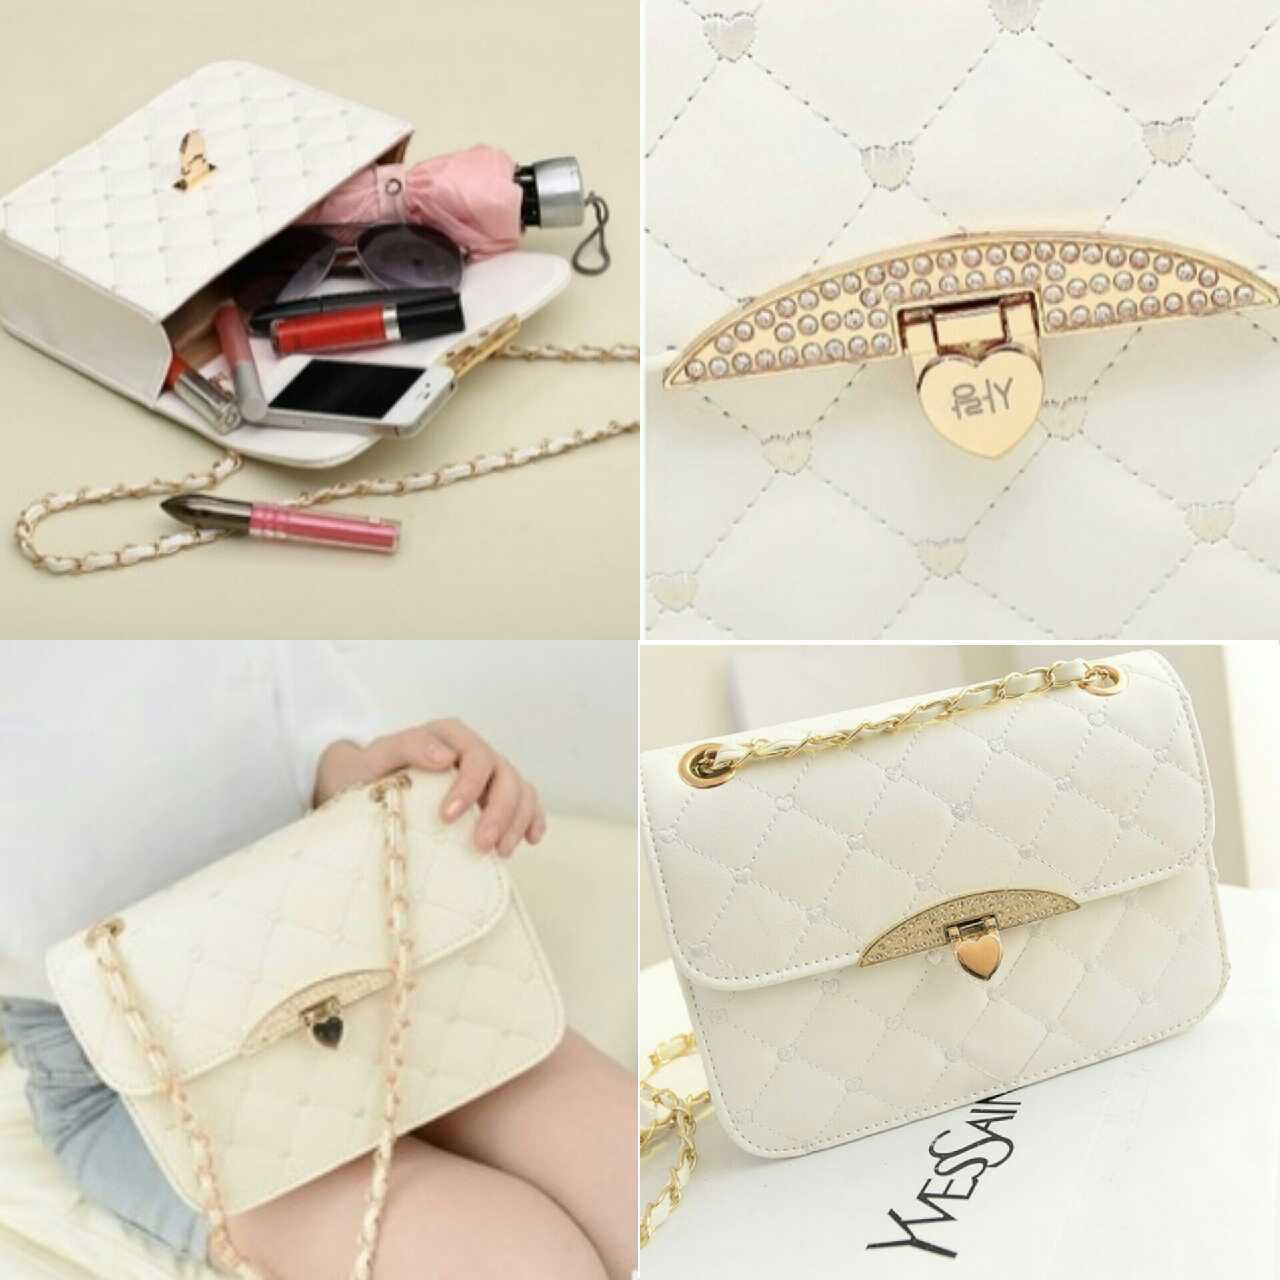 Buy TAS IMPORT Deals for only Rp99.000 instead of Rp125.000 7f4ec972ea